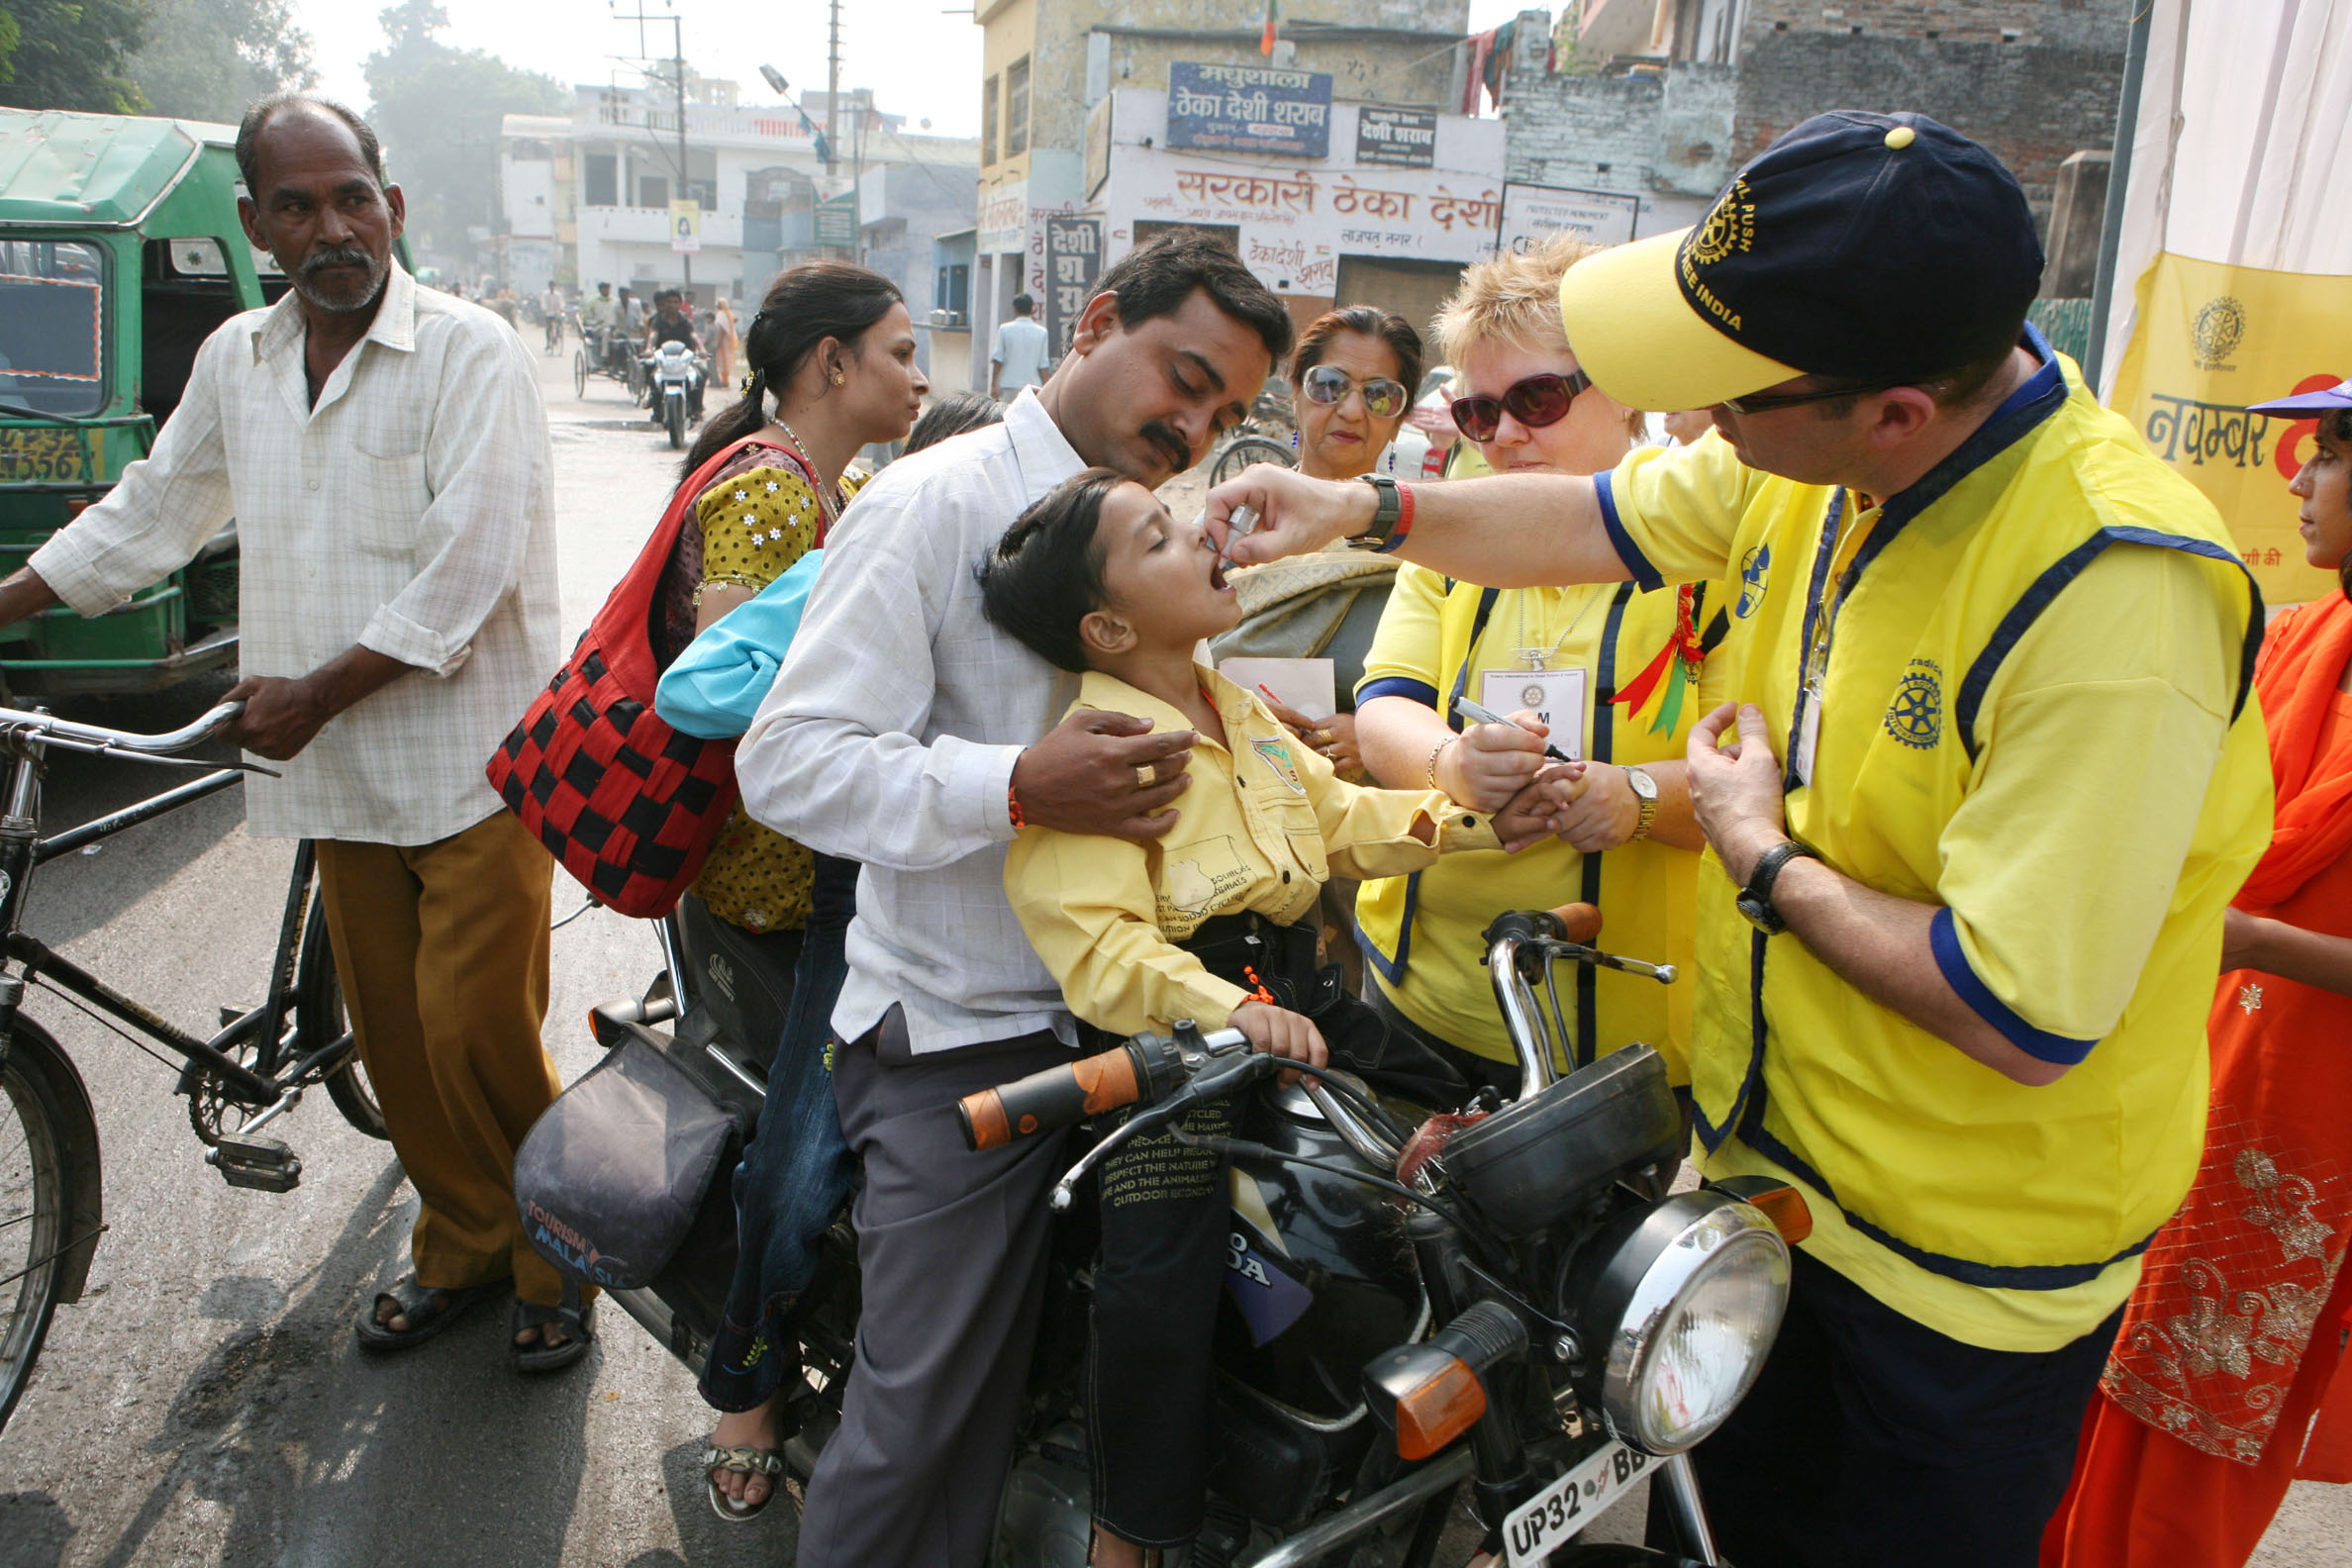 poliovirus polio immunization plus Introduction the global polio eradication initiative aims to eradicate the disease by providing polio vaccines to every child globally ensuring a polio-free world for future generations (ipv) to stop the risk of polio caused by vaccine-derived poliovirus.